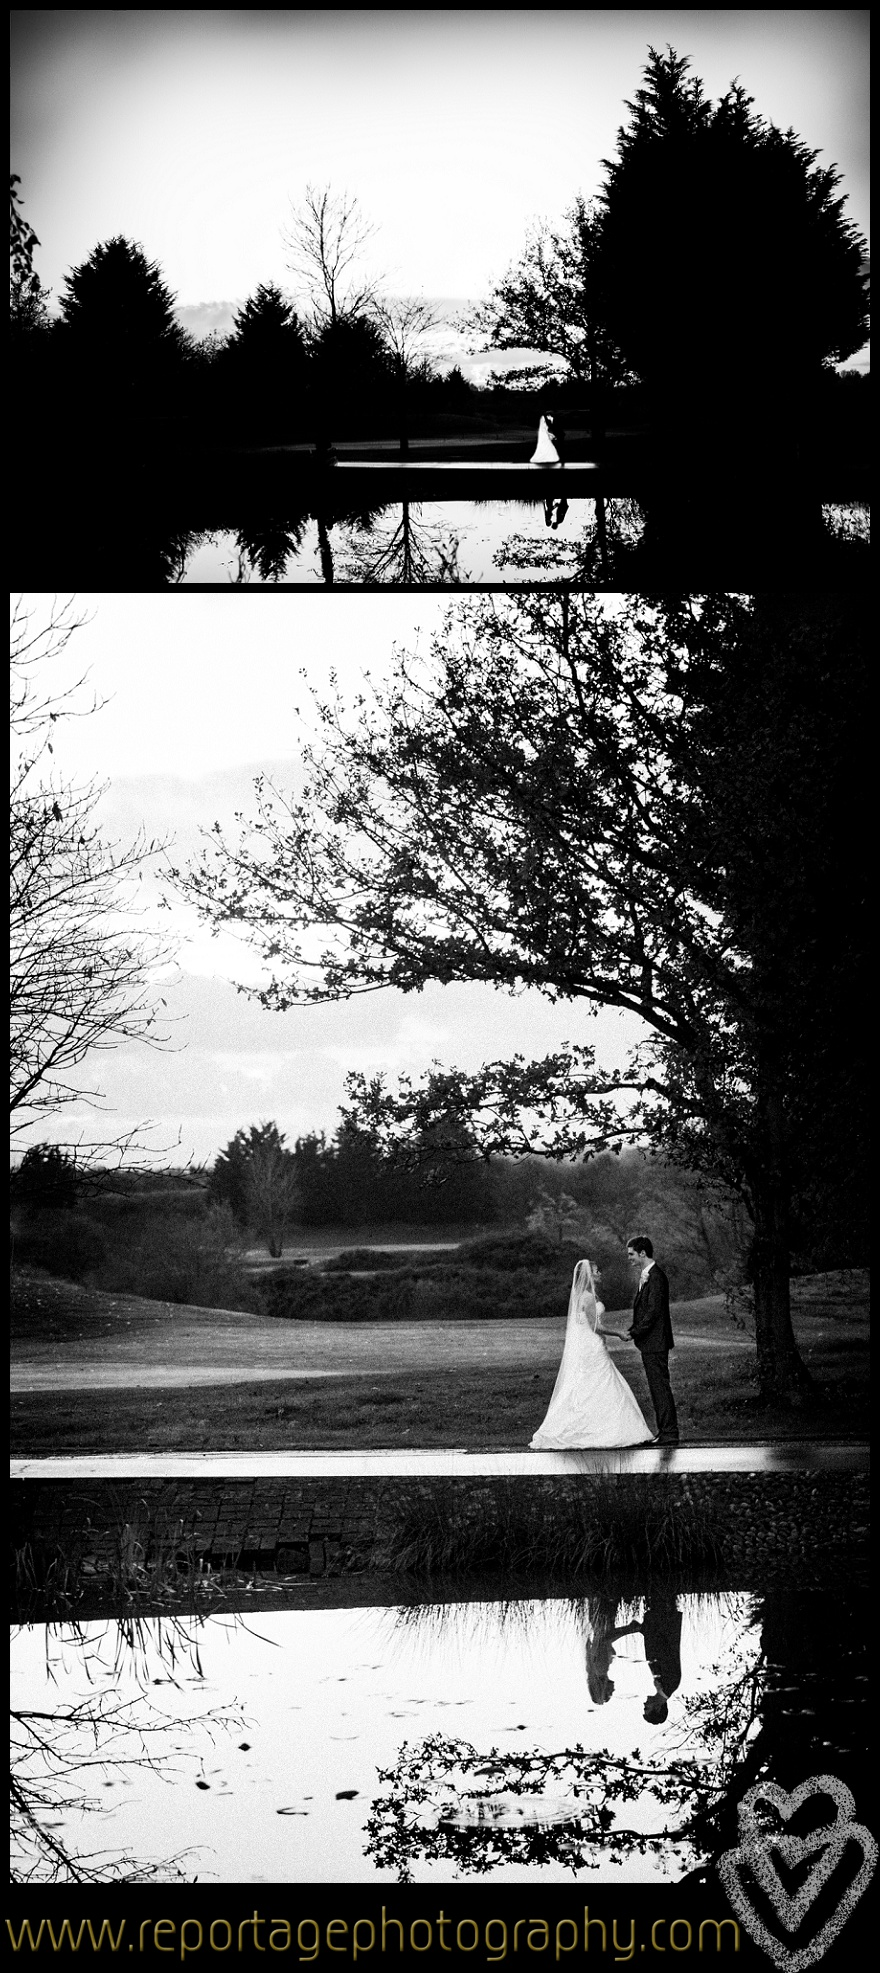 Channels Wedding photography